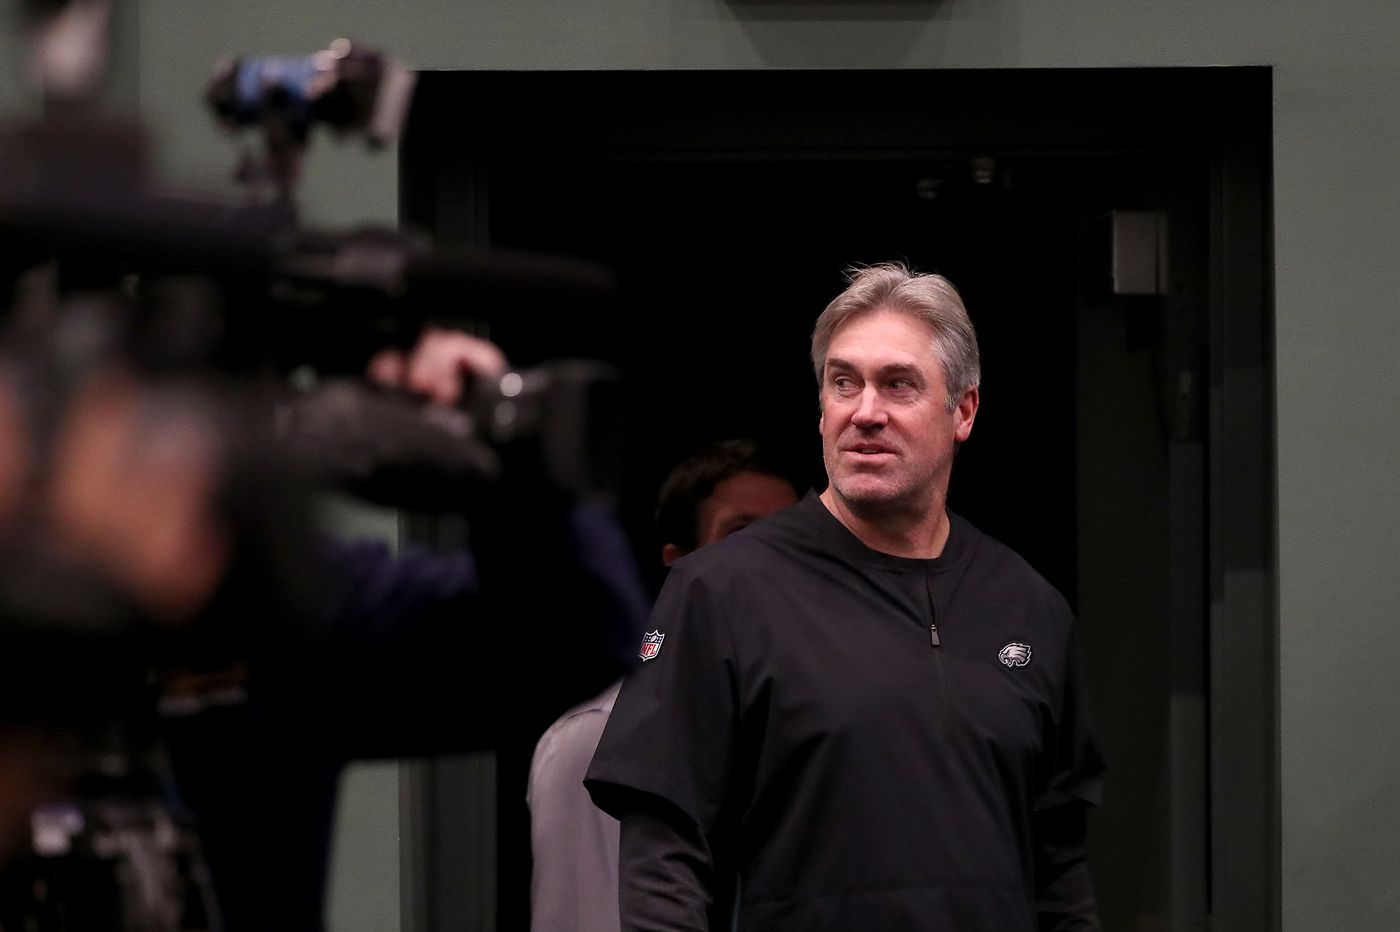 Eagles coaching staff won't attend pro days as sports teams take precautions over coronavirus concerns